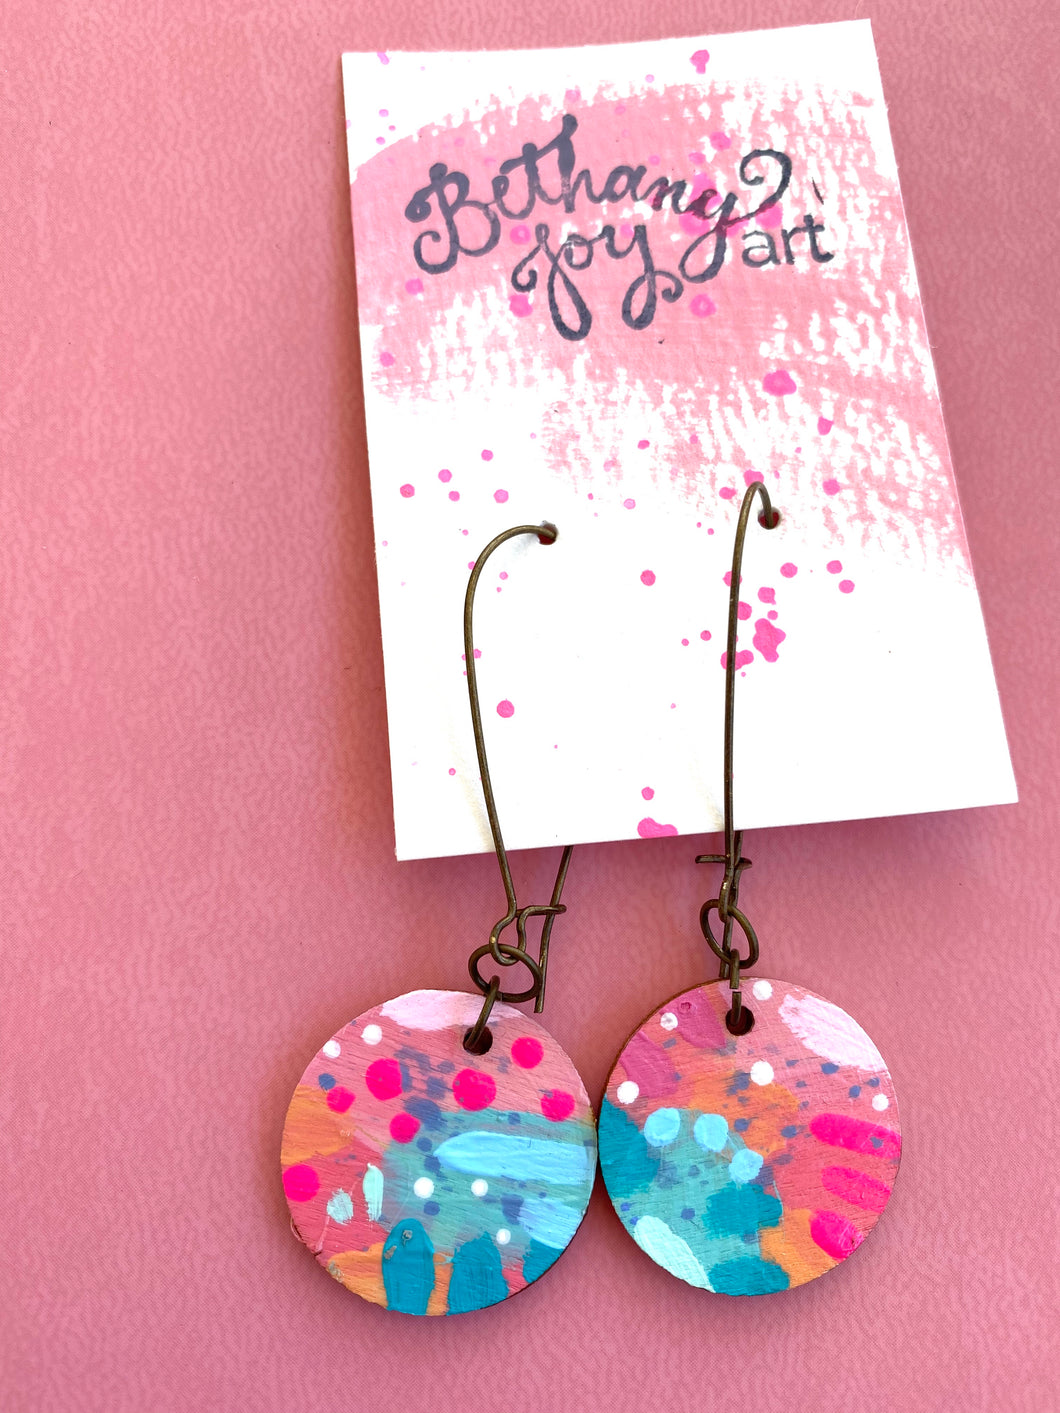 Colorful, Hand Painted Earrings 13 - Bethany Joy Art